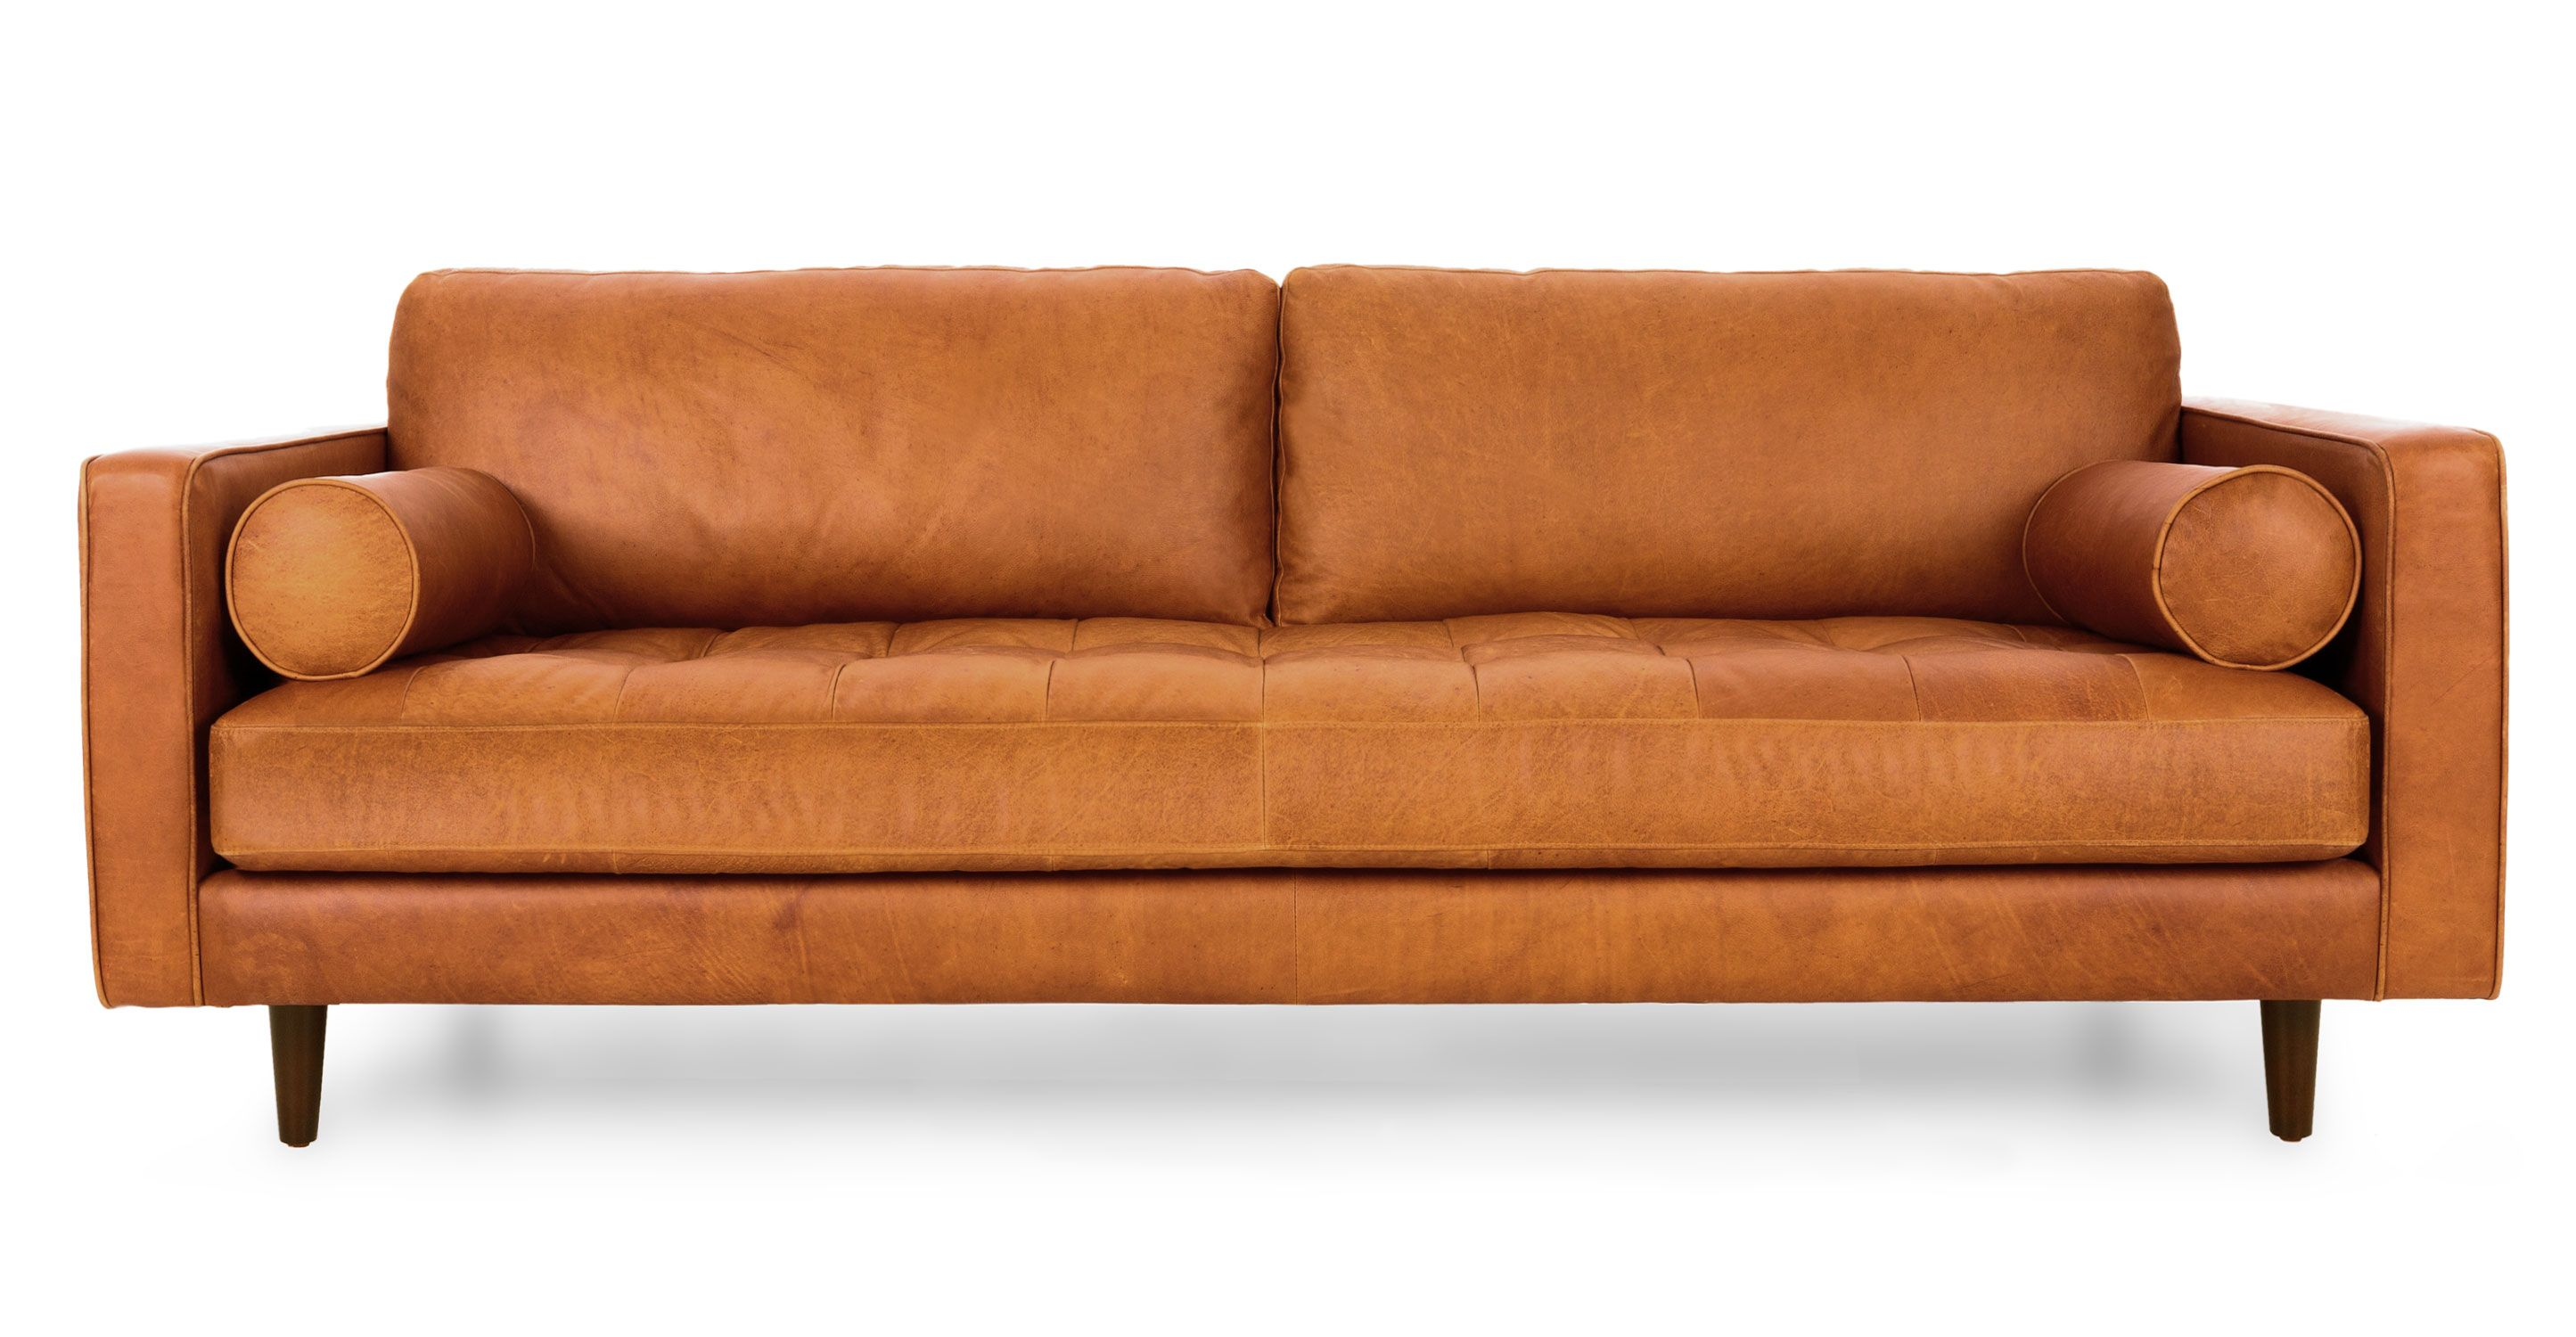 Tan Brown Leather Sofa Italian Leather